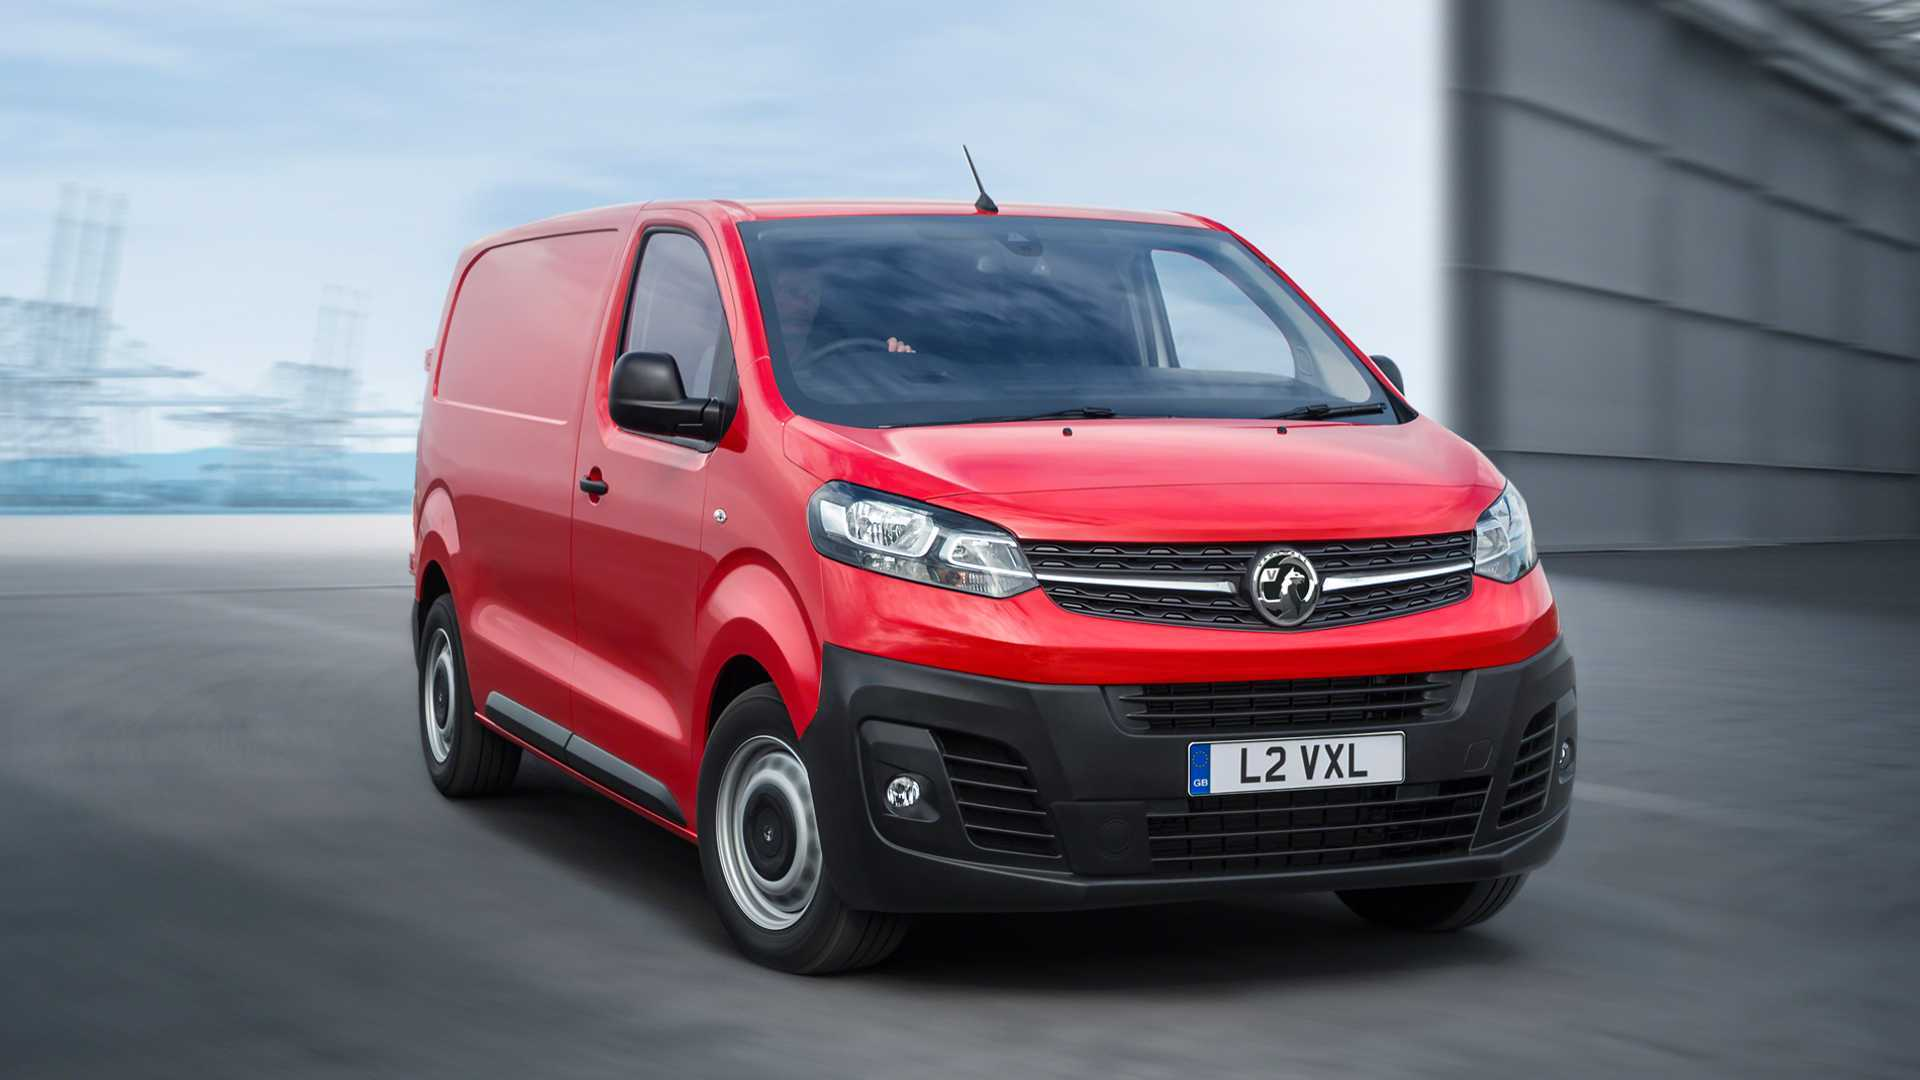 81 The Best Opel Vivaro 2020 Price And Review